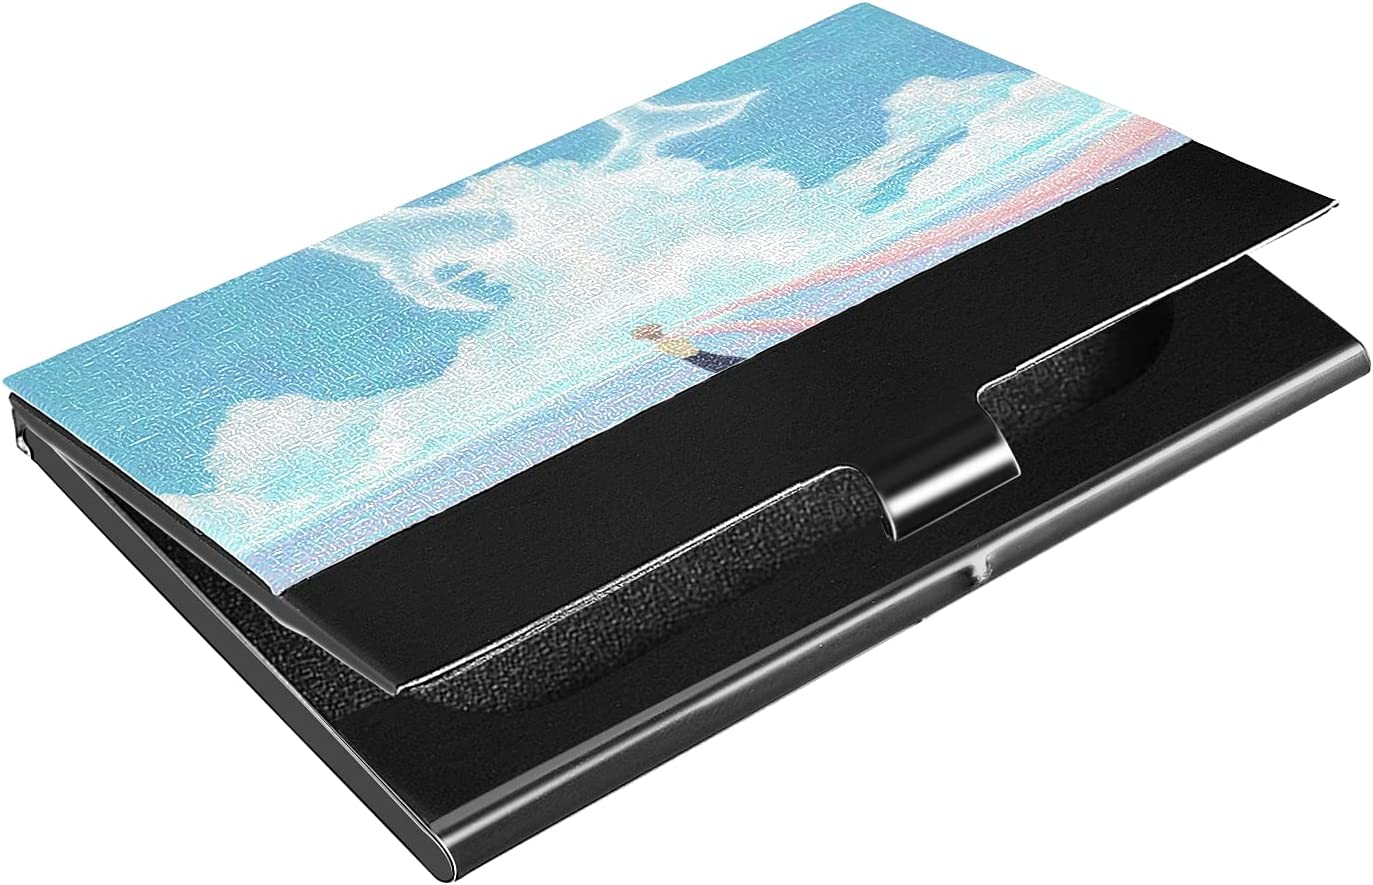 OTVEE Whale Cloud Boy On Lake Business Card Holder Wallet Stainless Steel & Leather Pocket Business Card Case Organizer Slim Name Card ID Card Holders Credit Card Wallet Carrier Purse for Women Men